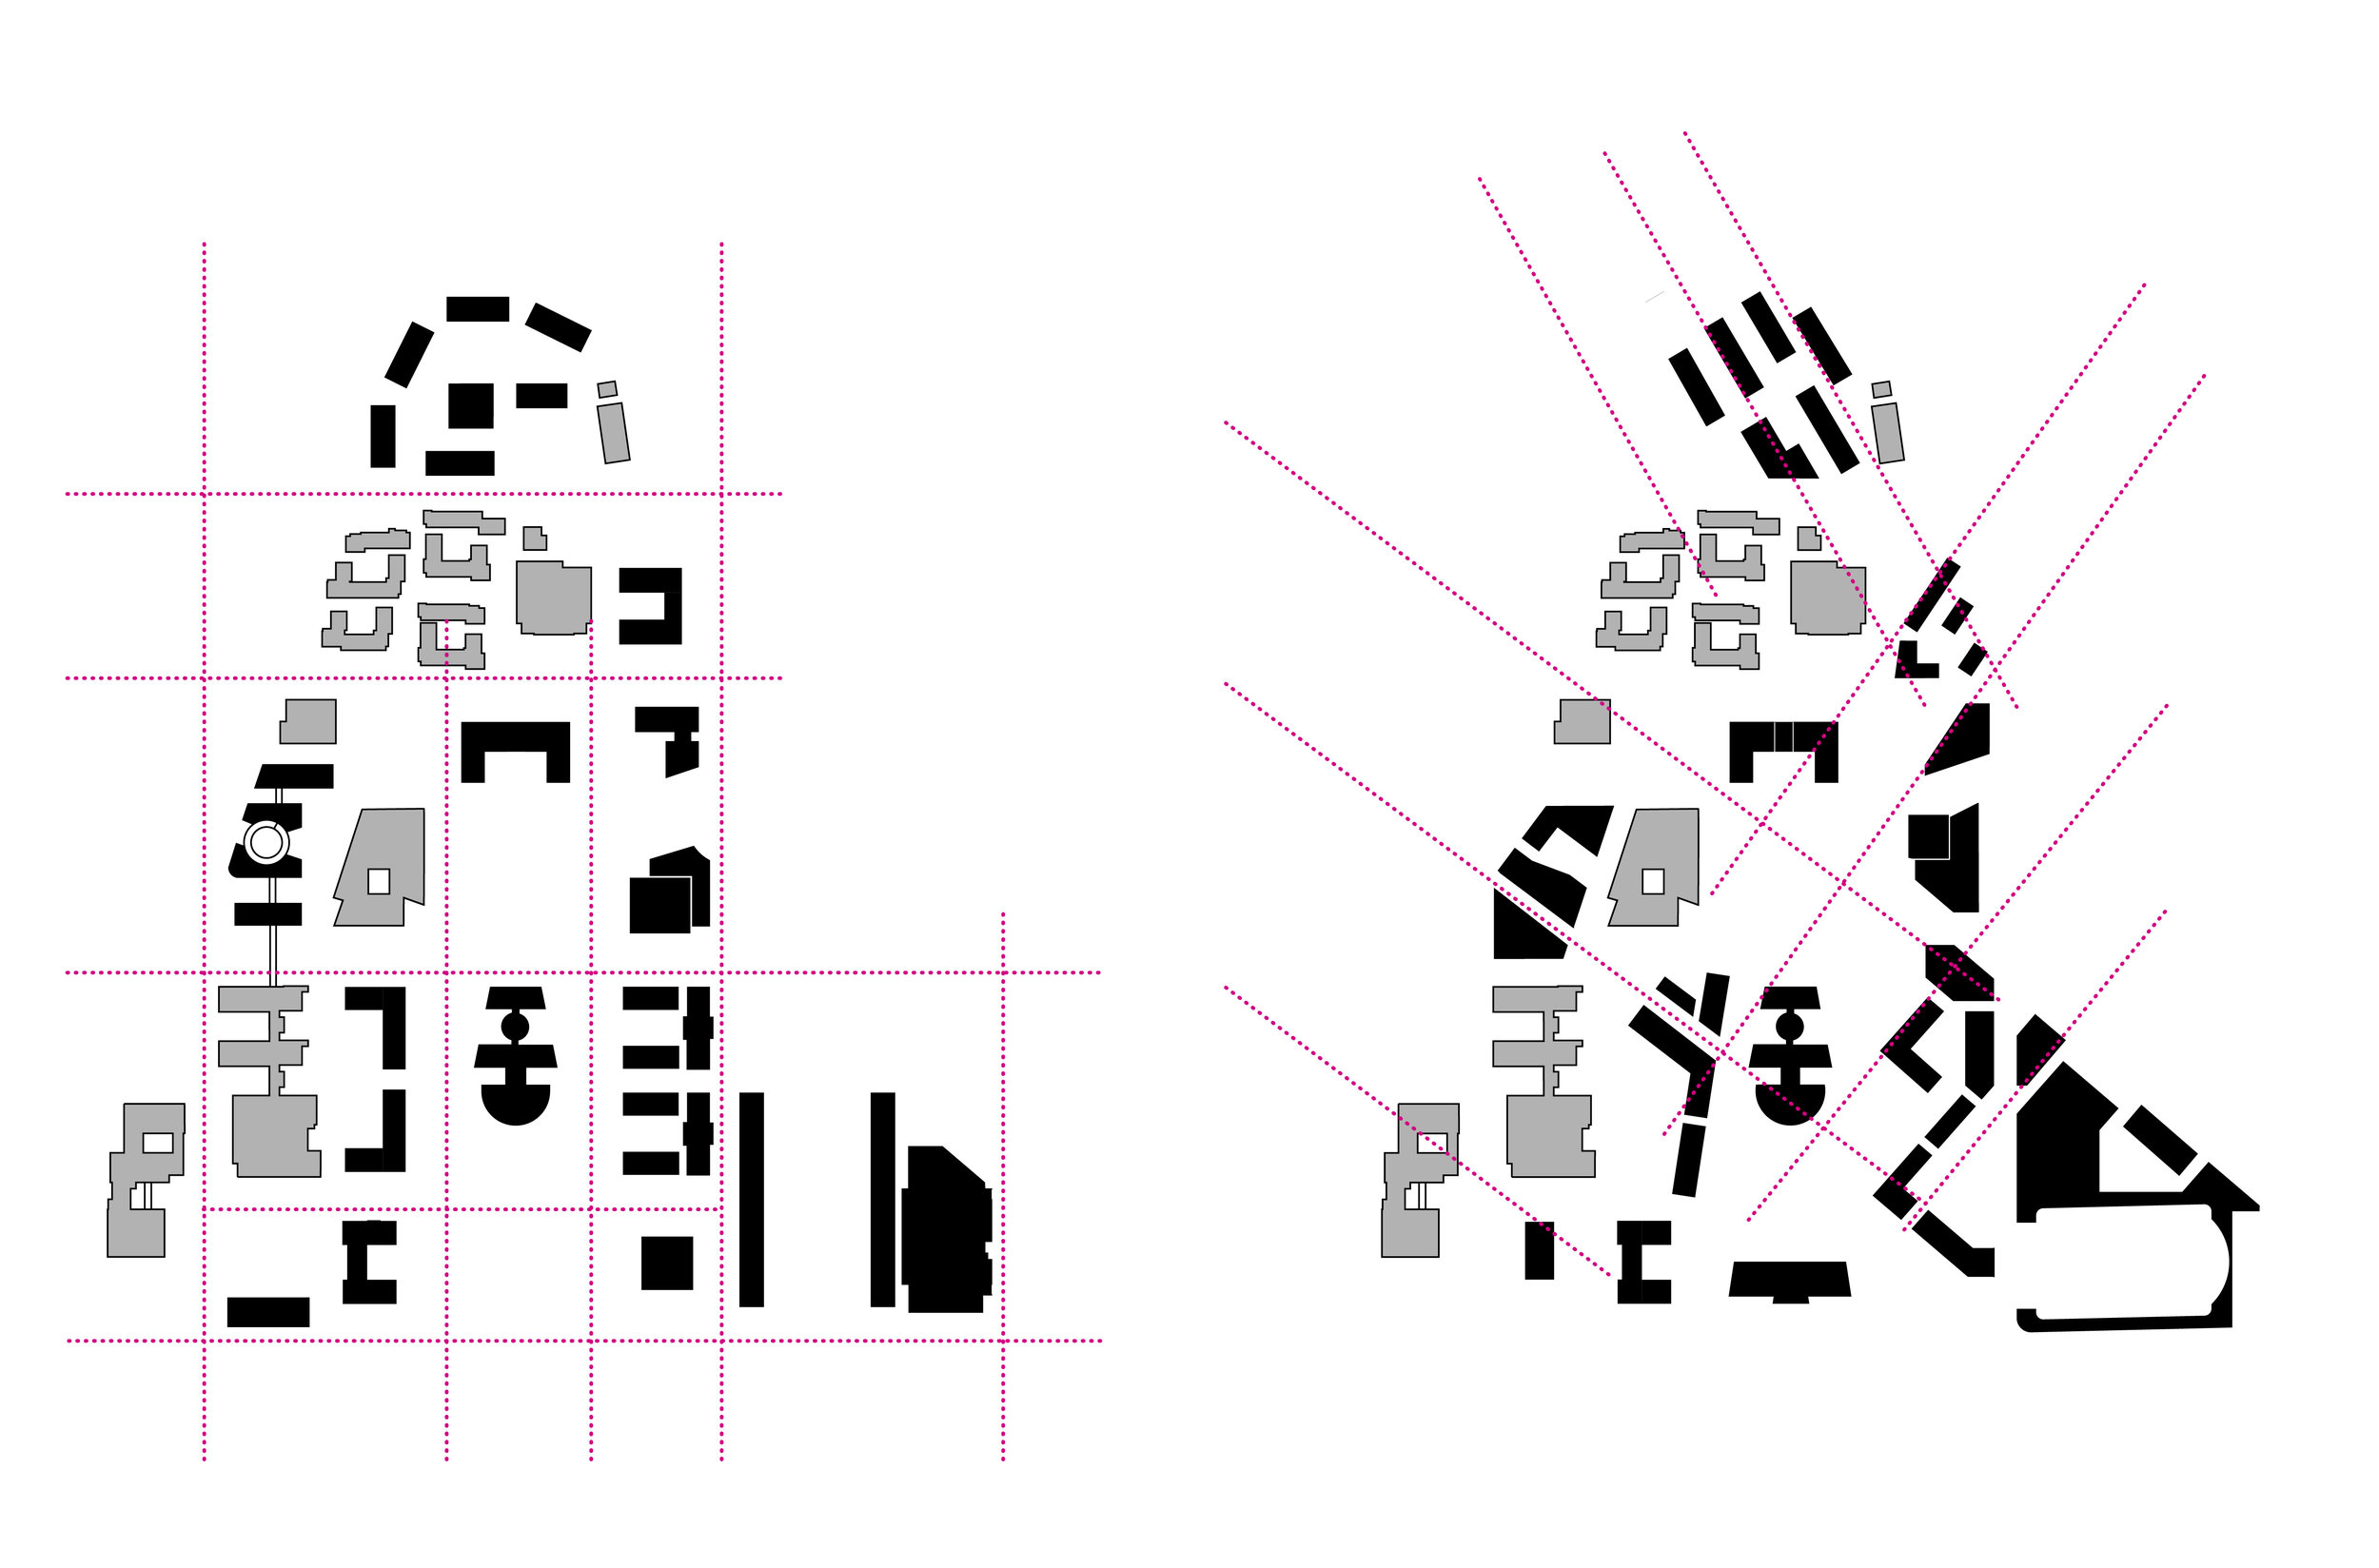 Reorienting the grid to react to the topography and historic agricultural economy of the city